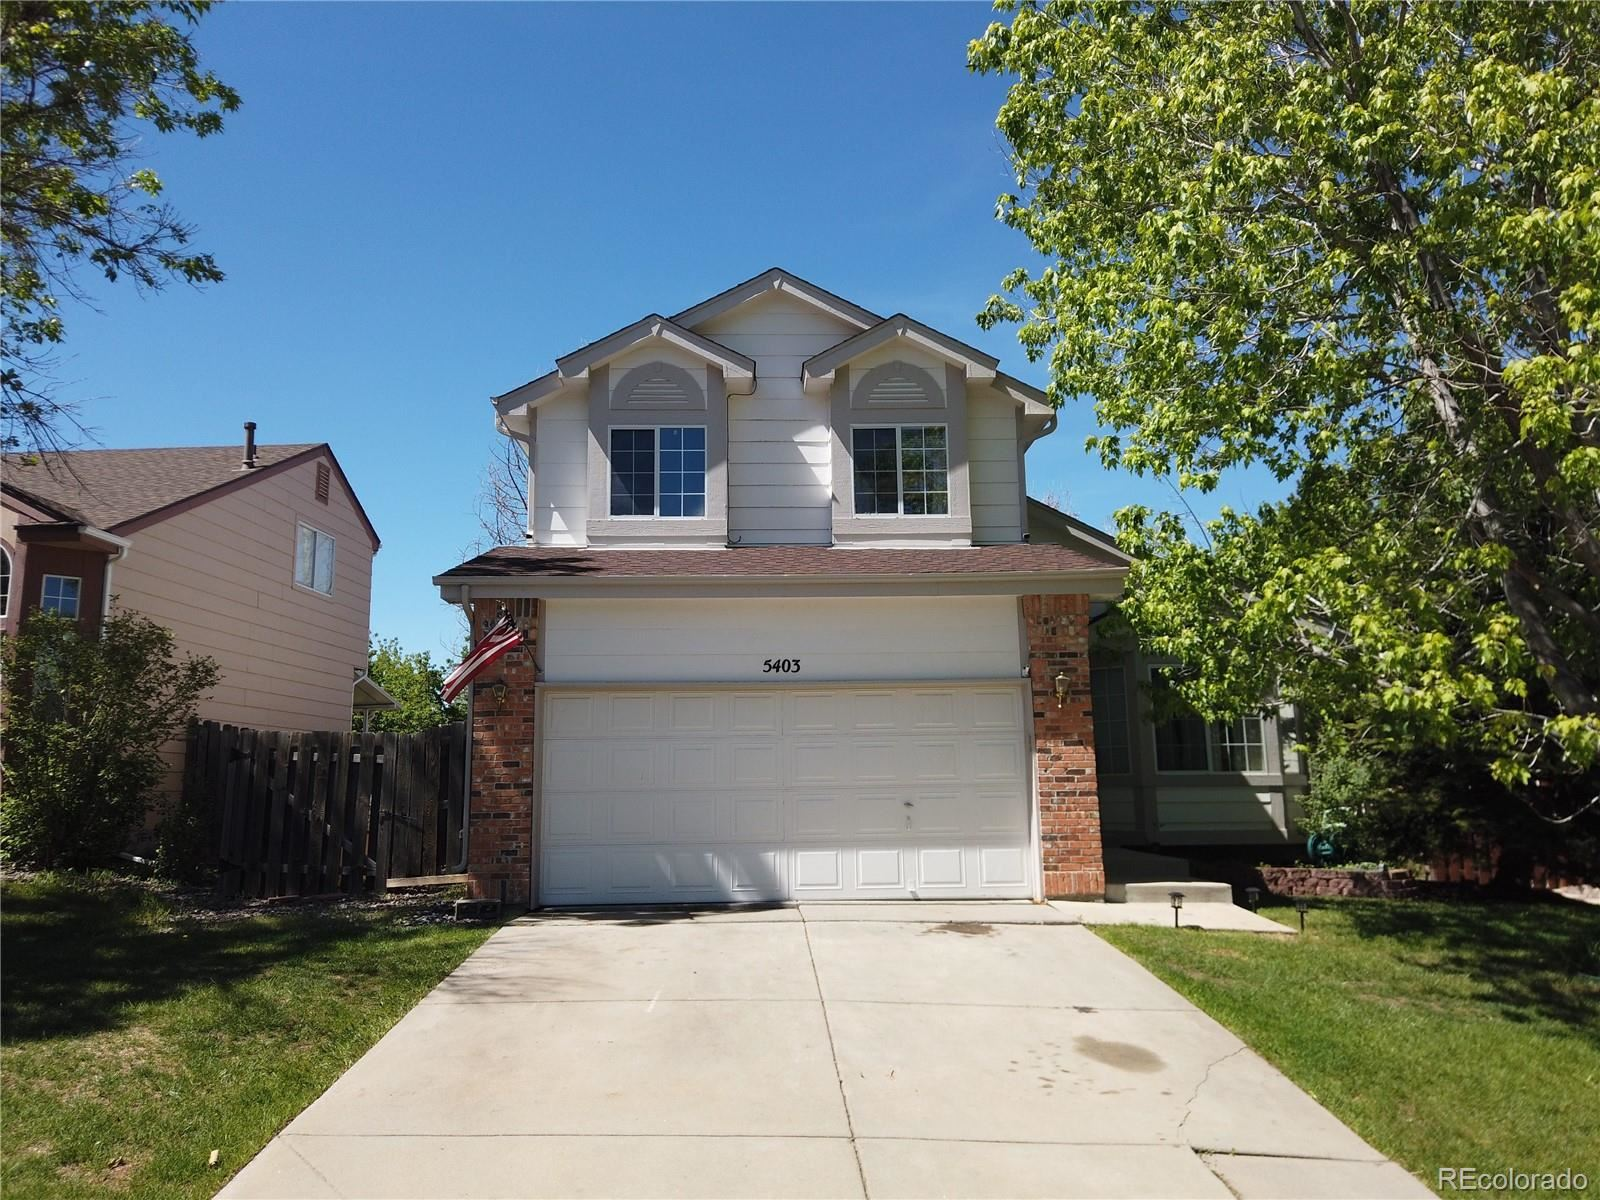 5403 S Ireland Way, Centennial, CO 80015 - #: 8690469